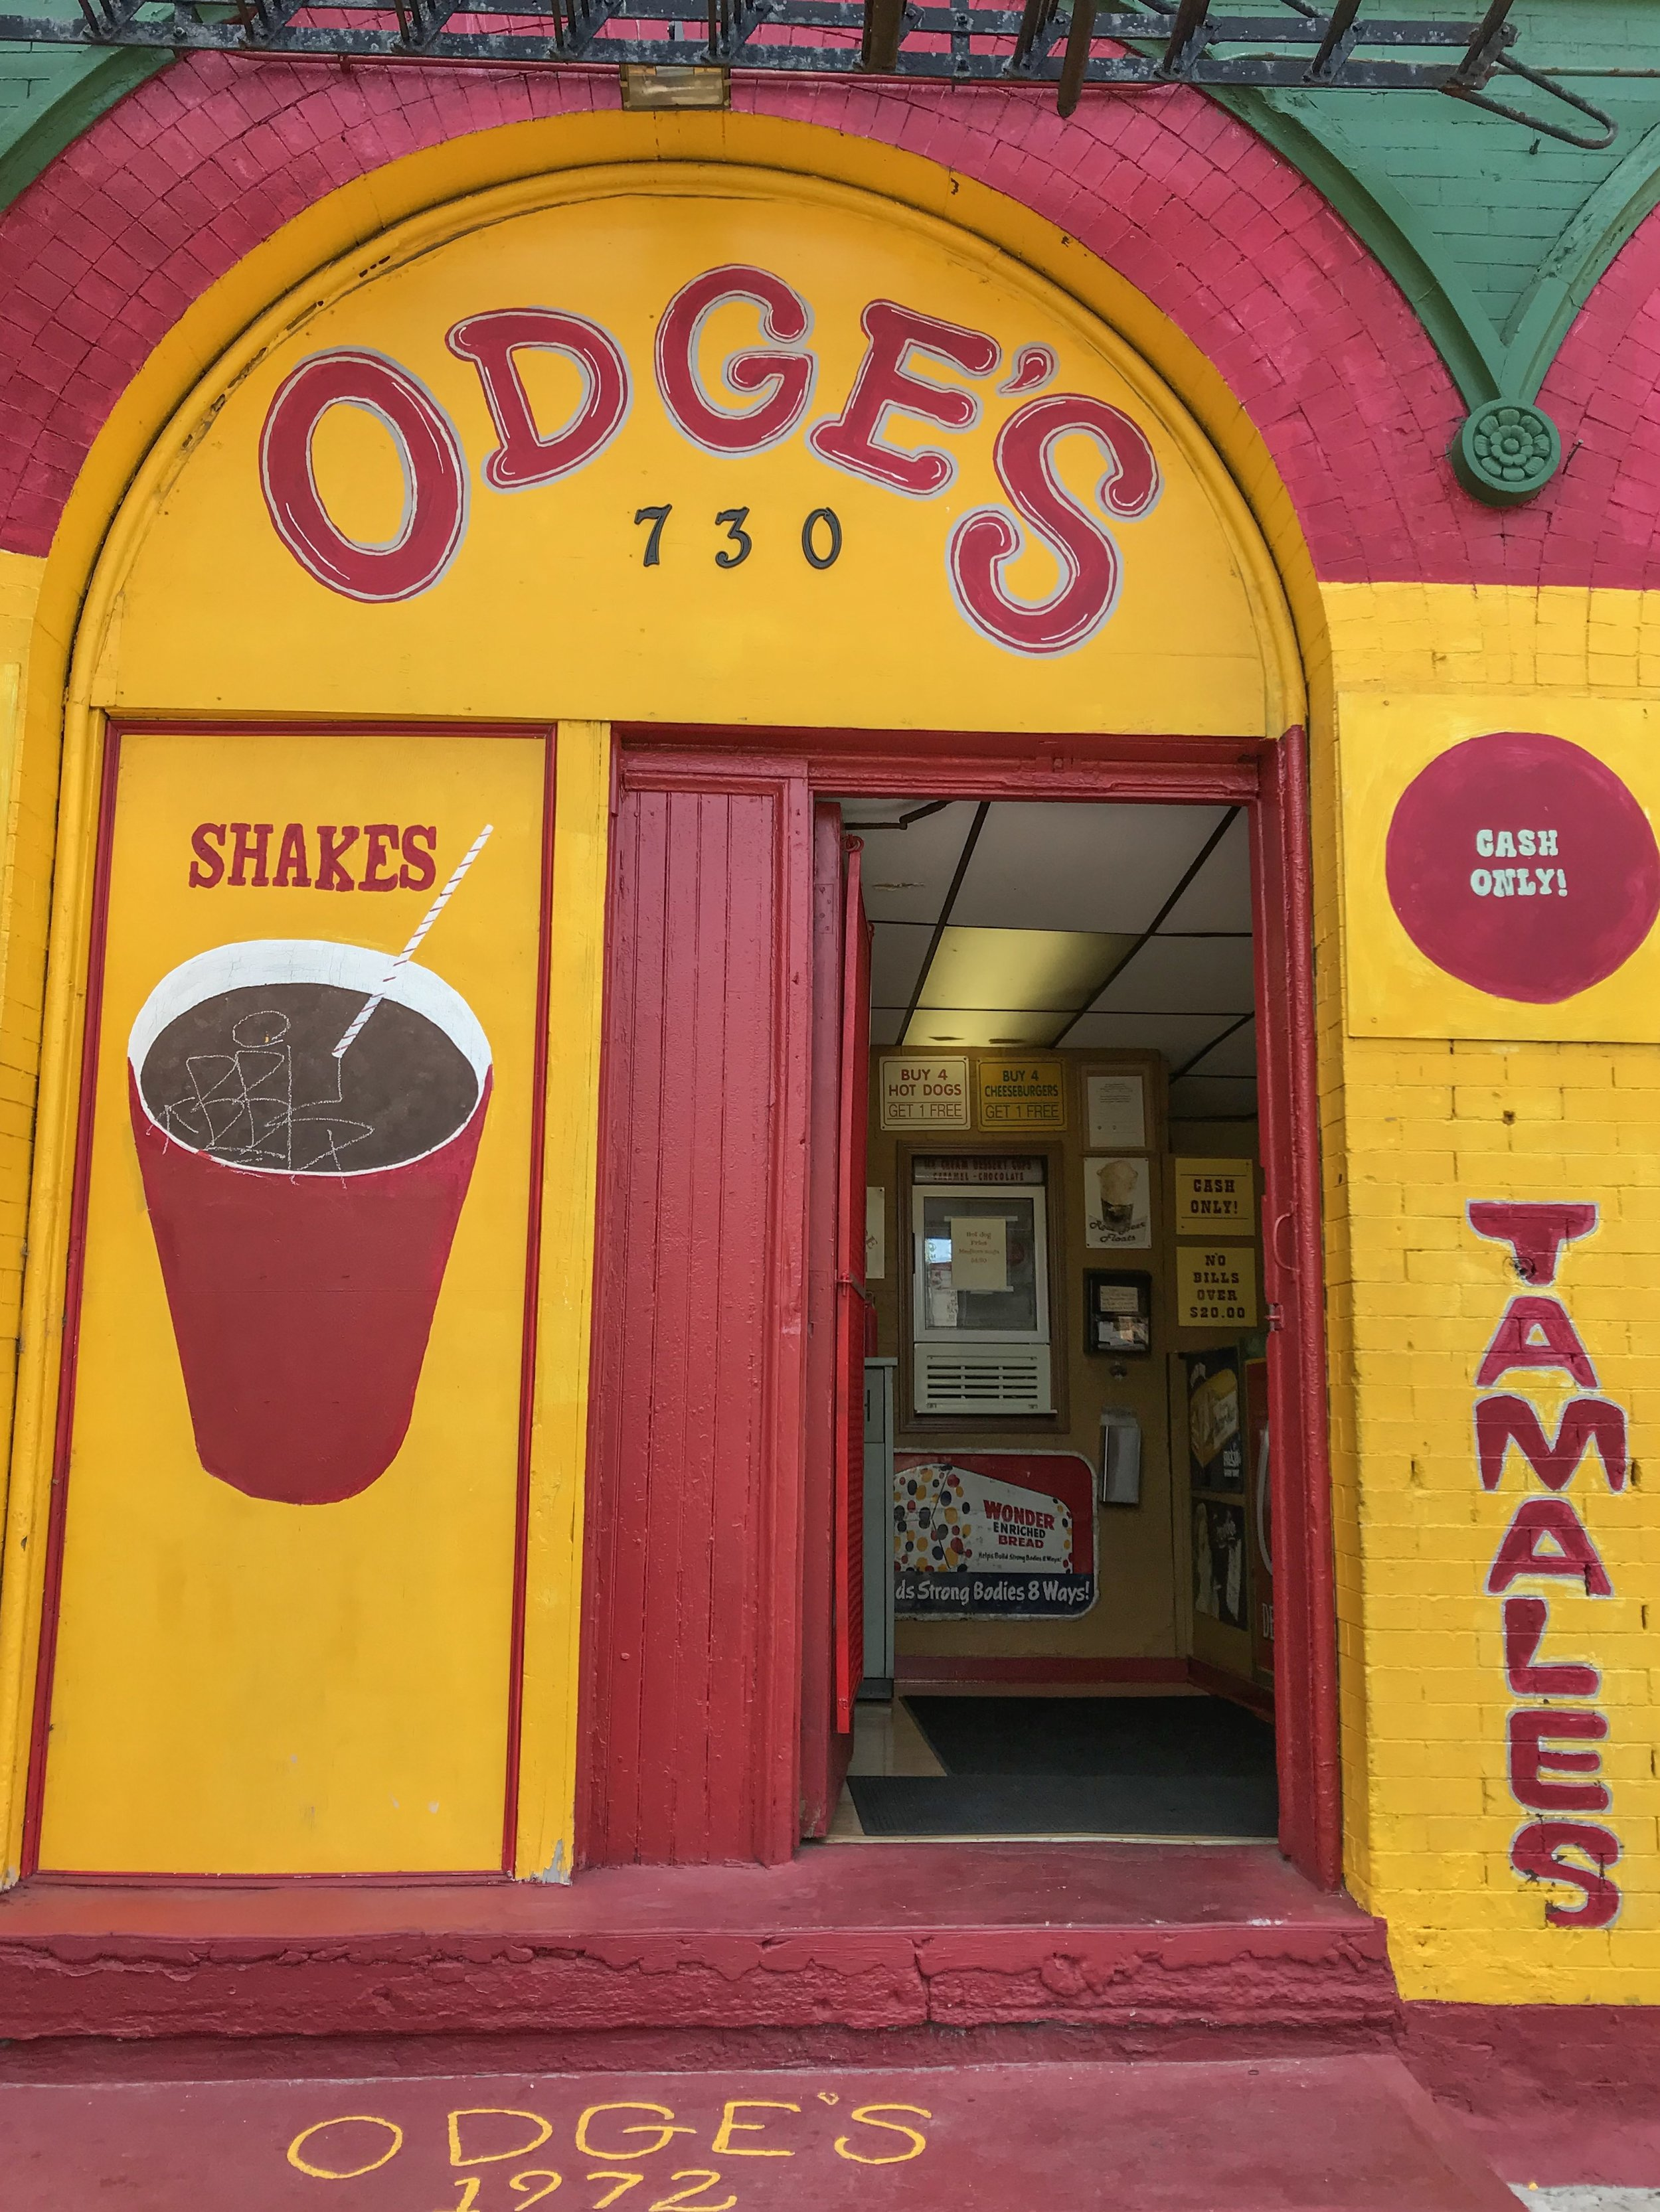 The Exterior of Odge's Restaurant is Full of Food